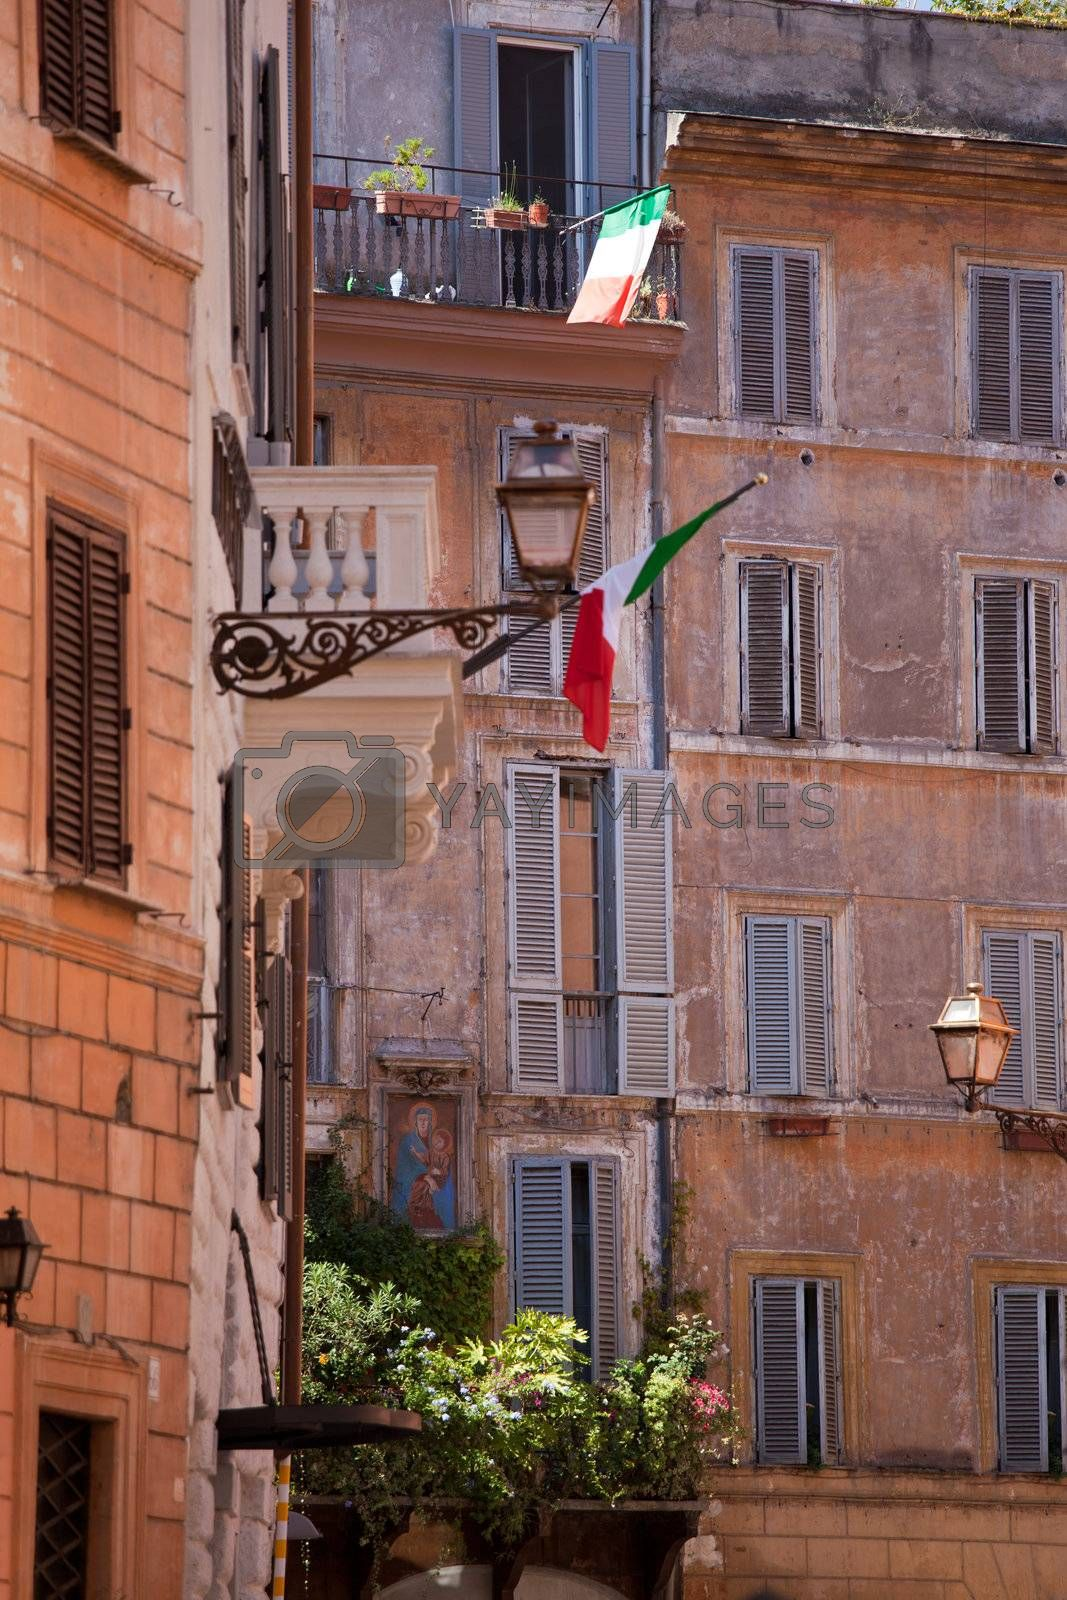 Picturesque facades of old medieval multistory urban residential stone brick-red houses with flowers and Italian flags on balconies, with street lamp and icon on wall in city Rome Italy